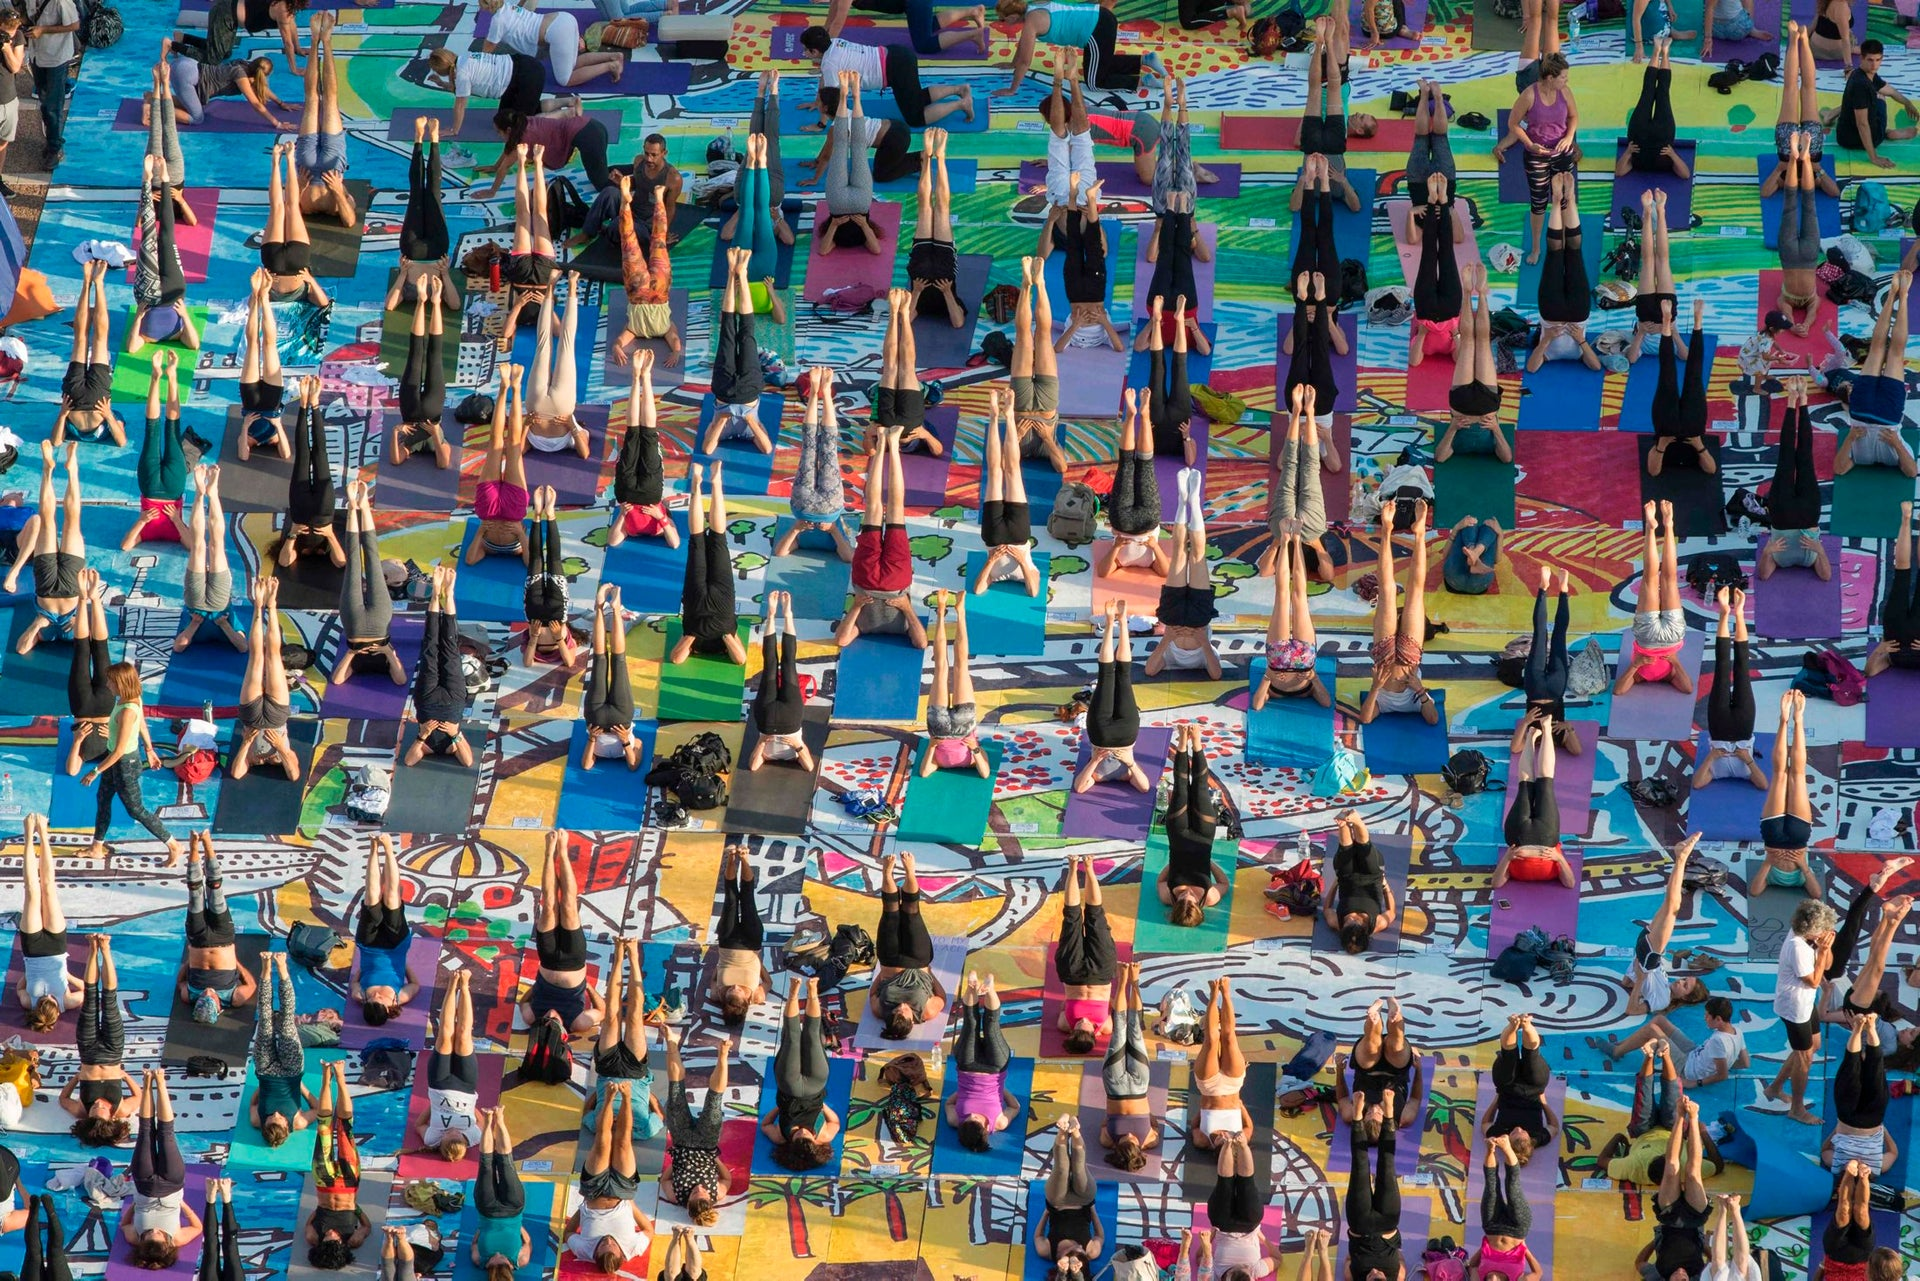 Hundreds of people practise yoga on the occasion of the International Yoga Day in Tel Aviv on June 21, 2017.